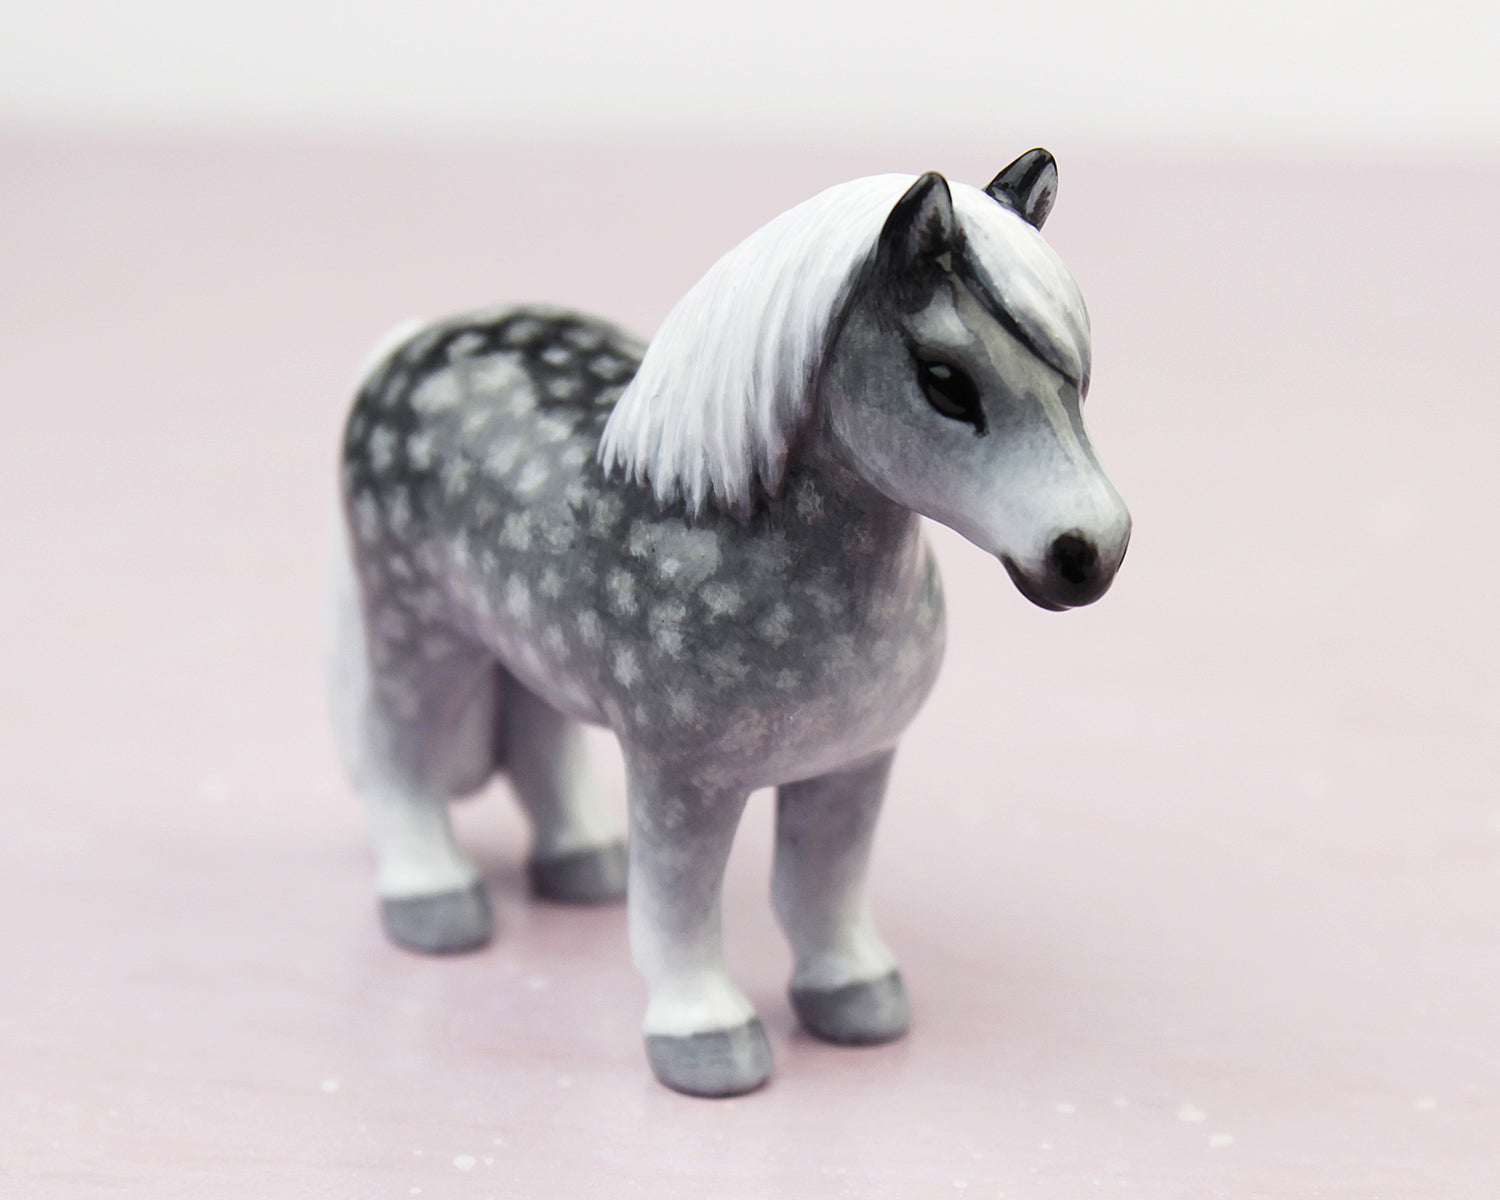 dapple grey pony with white mane